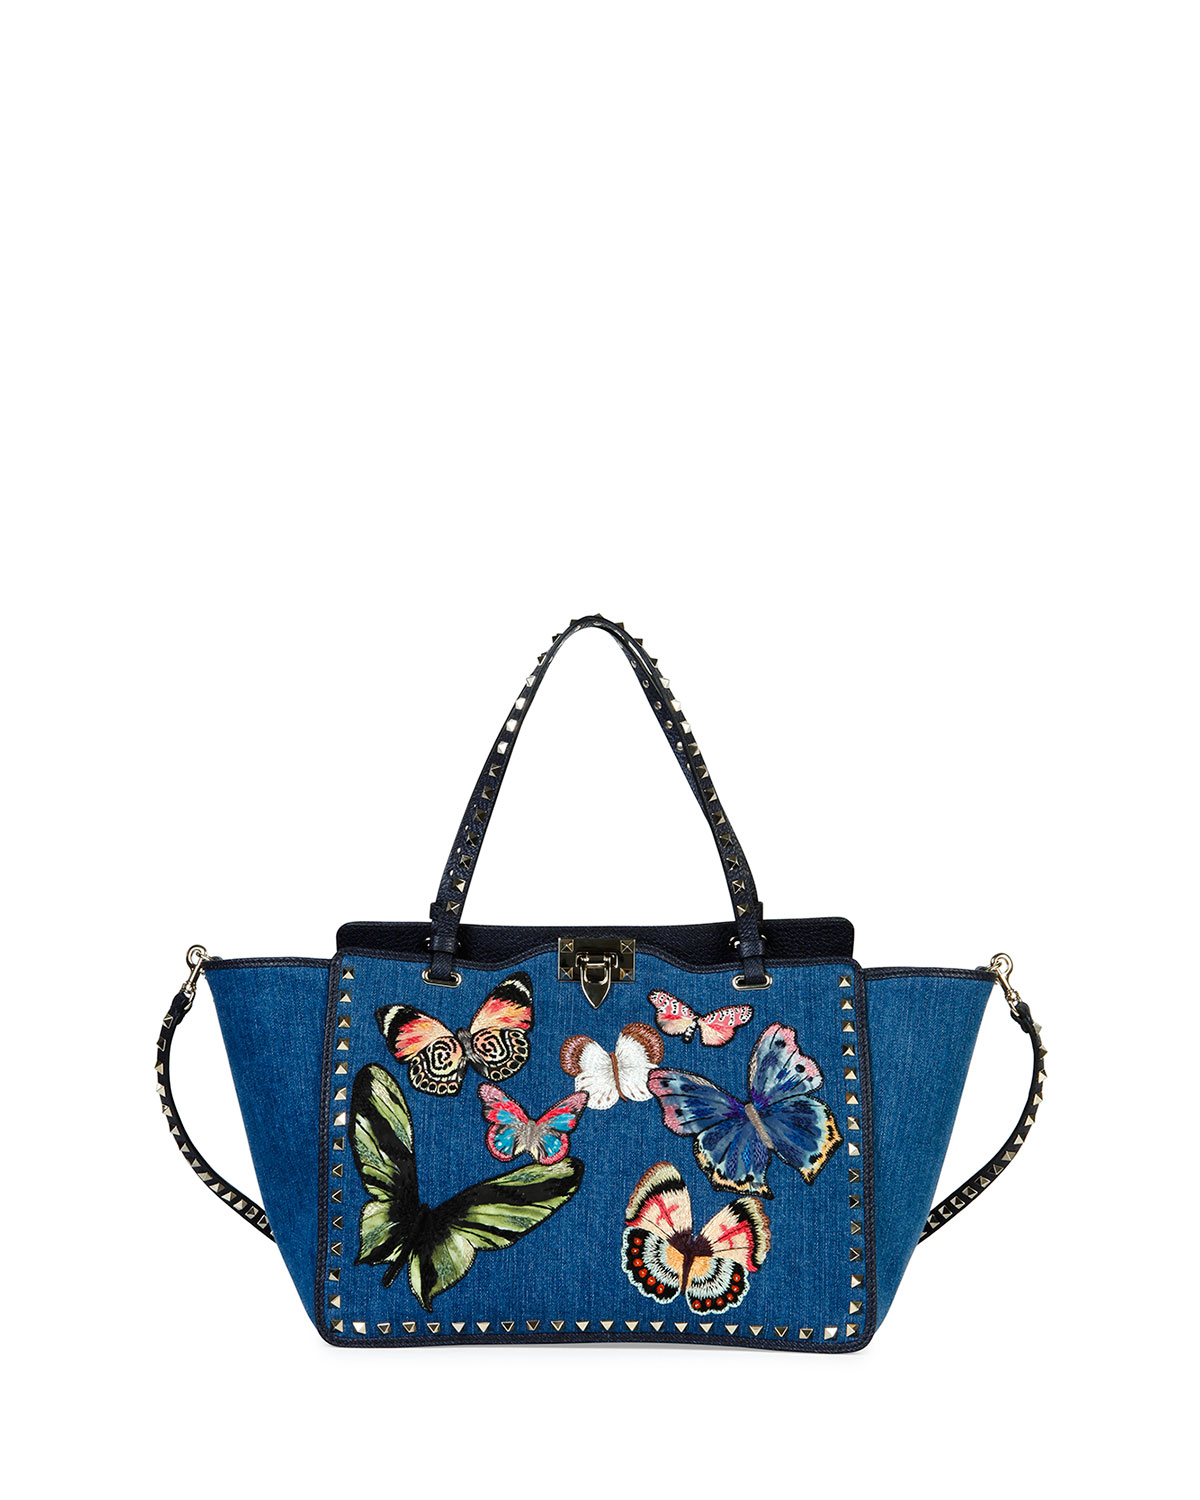 Butterfly Rockstud Denim (Blue) Tote Bag - Valentino